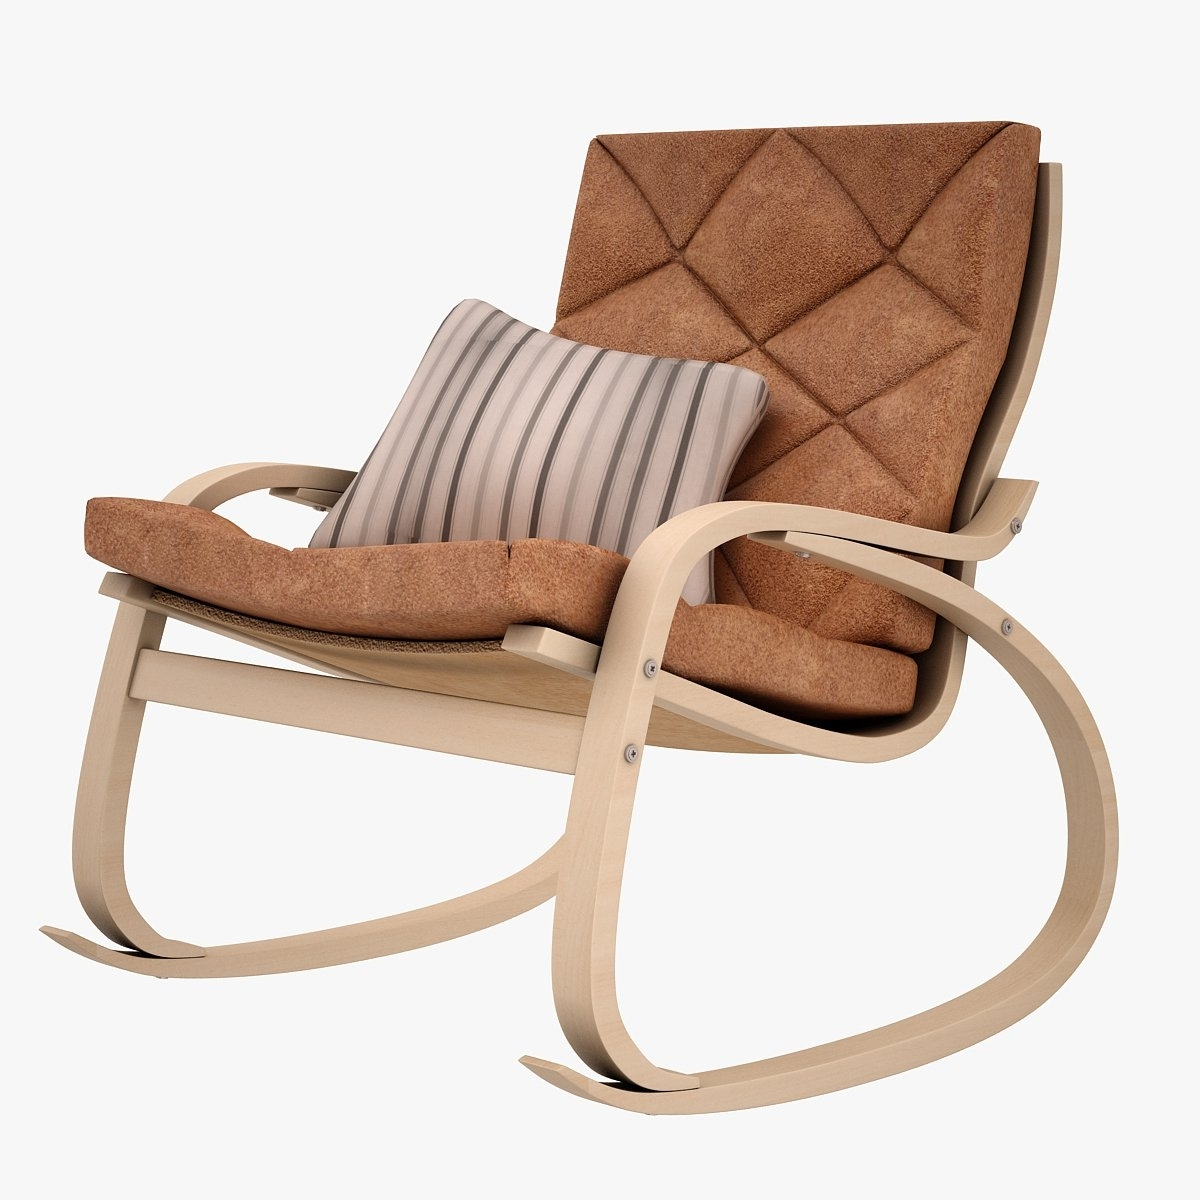 Widely Used Ikea Poang Rocking Chair 3D Model In Chair 3Dexport Within Ikea Rocking Chairs (View 20 of 20)